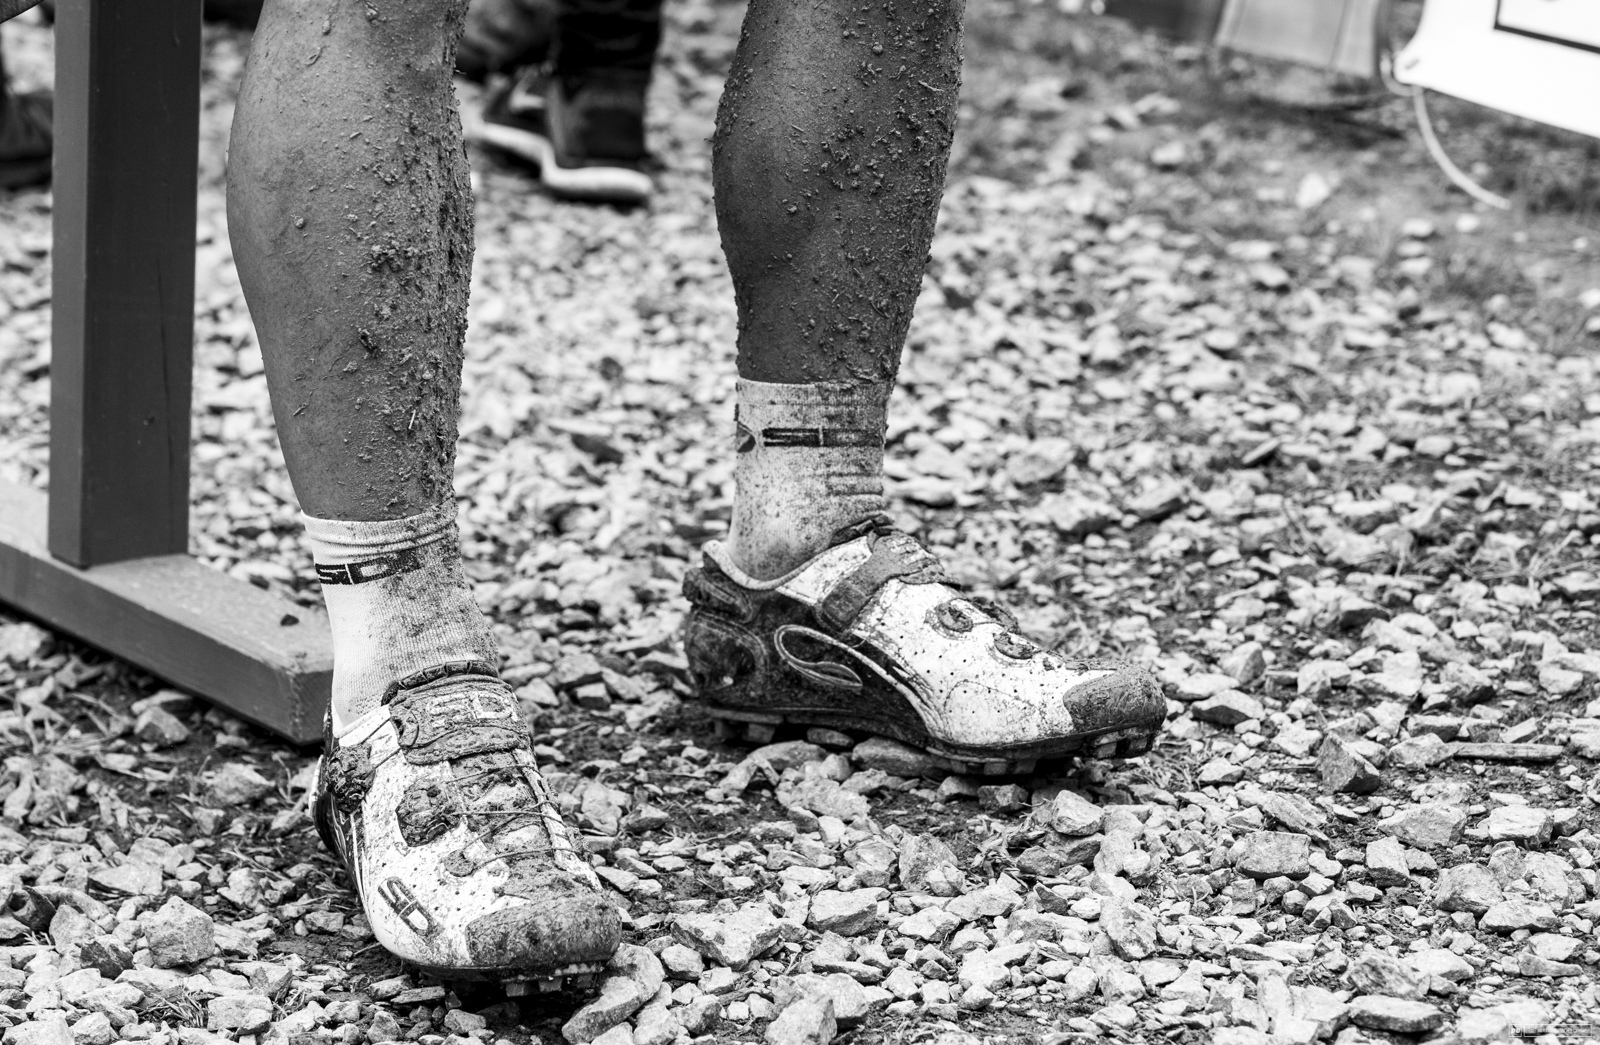 The loamy soil of Nove Mesto caked on the legs like concrete.